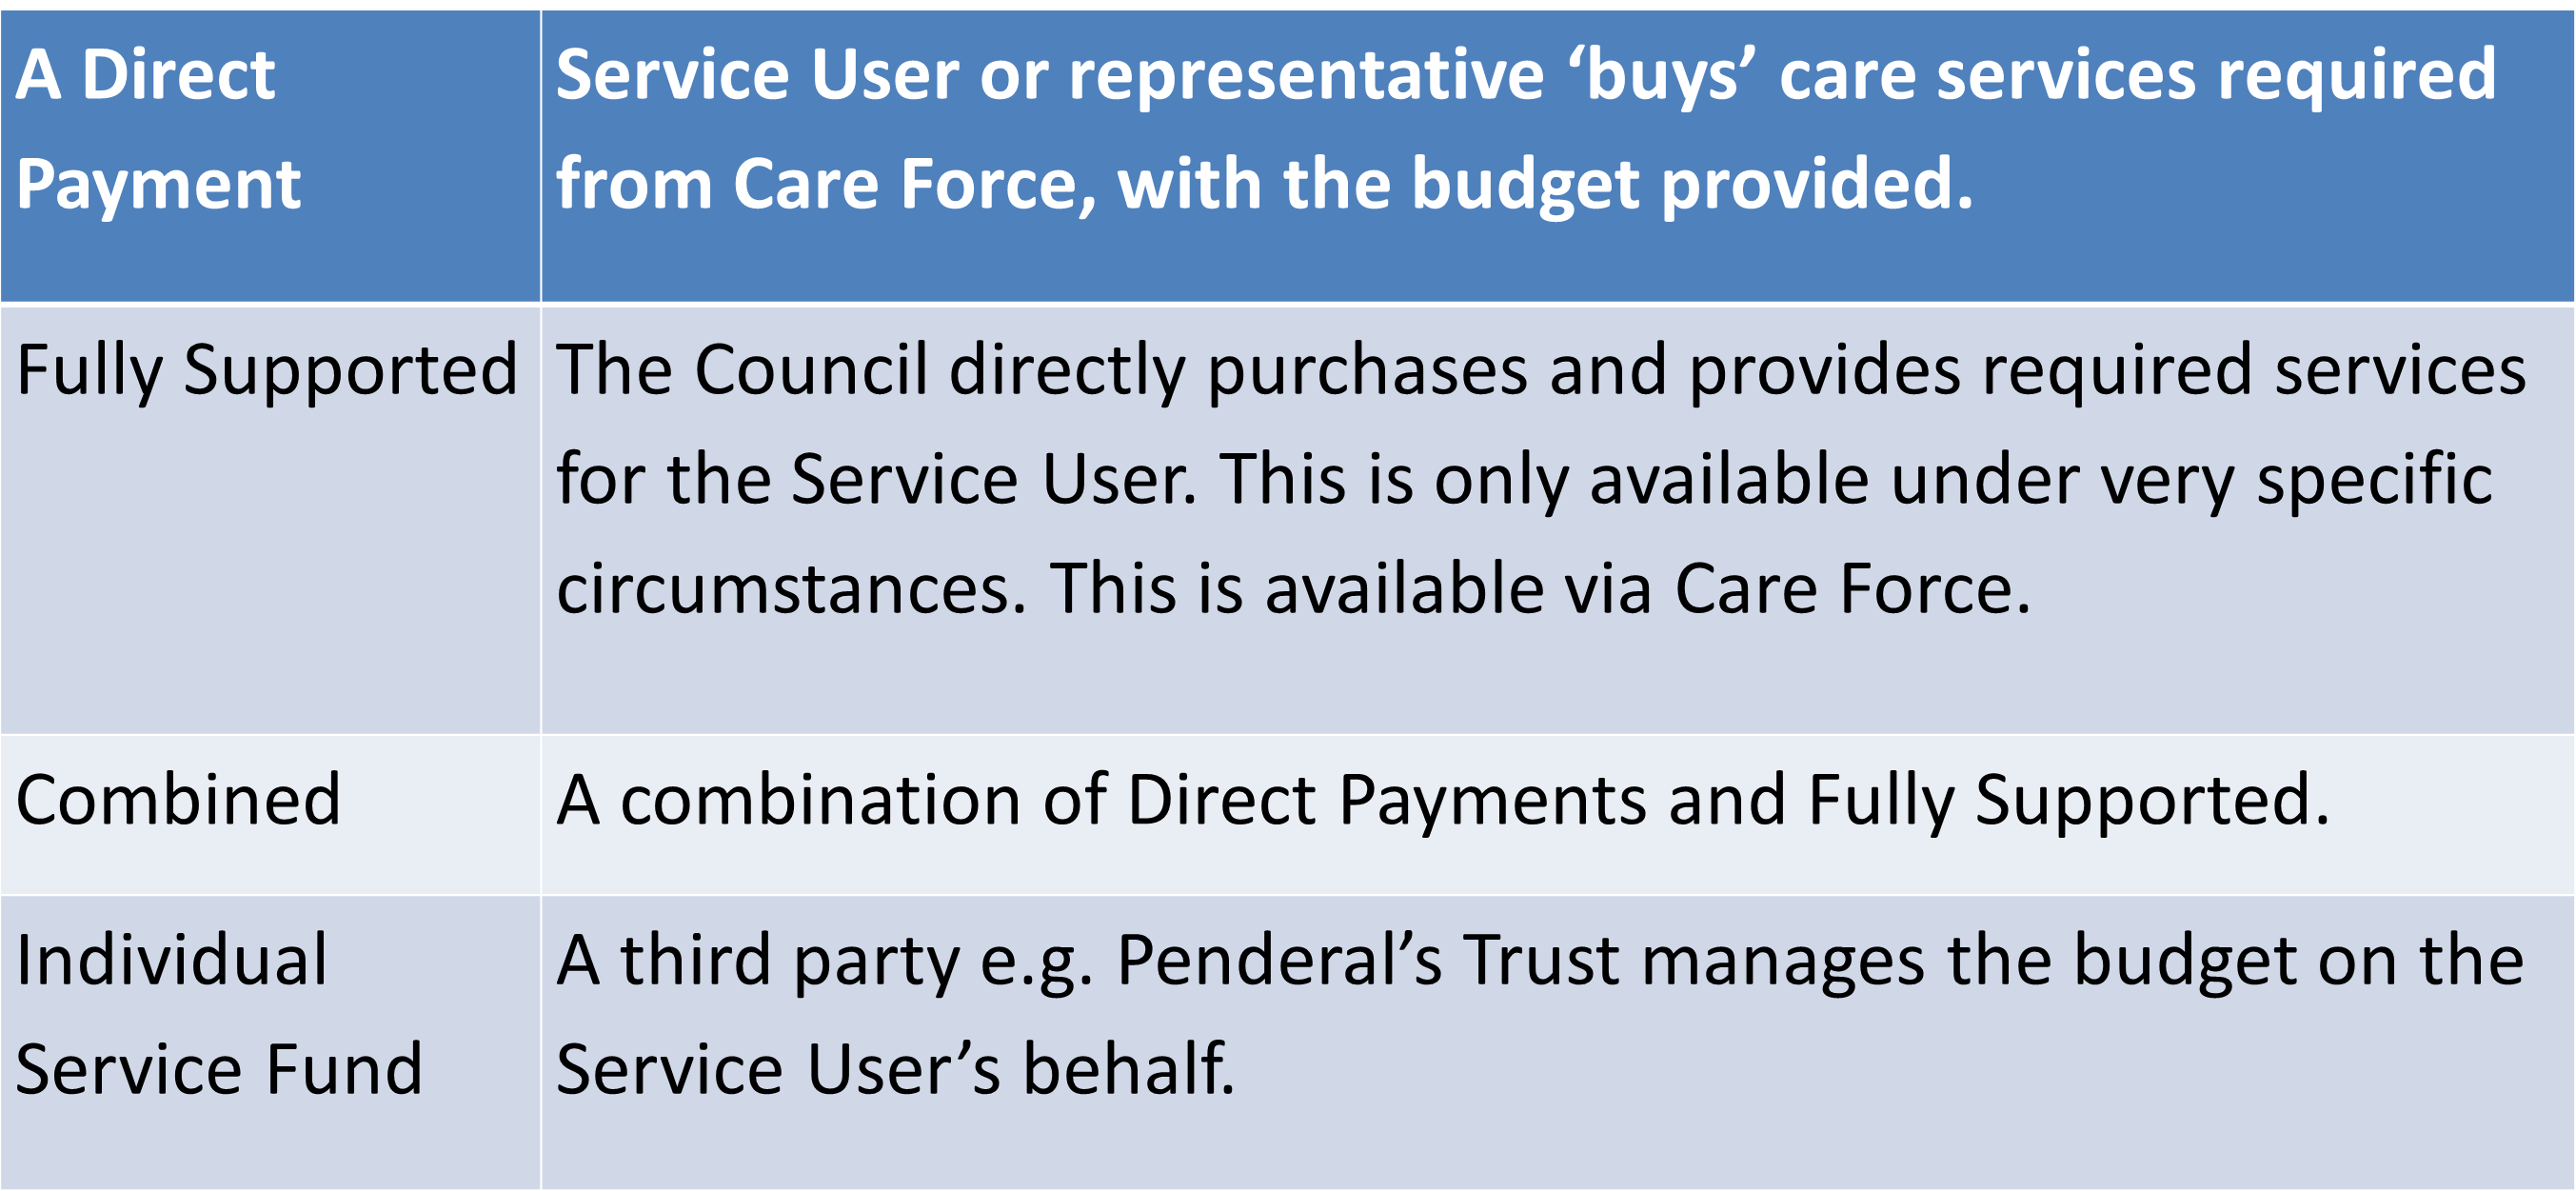 personal budgets direct payments care force